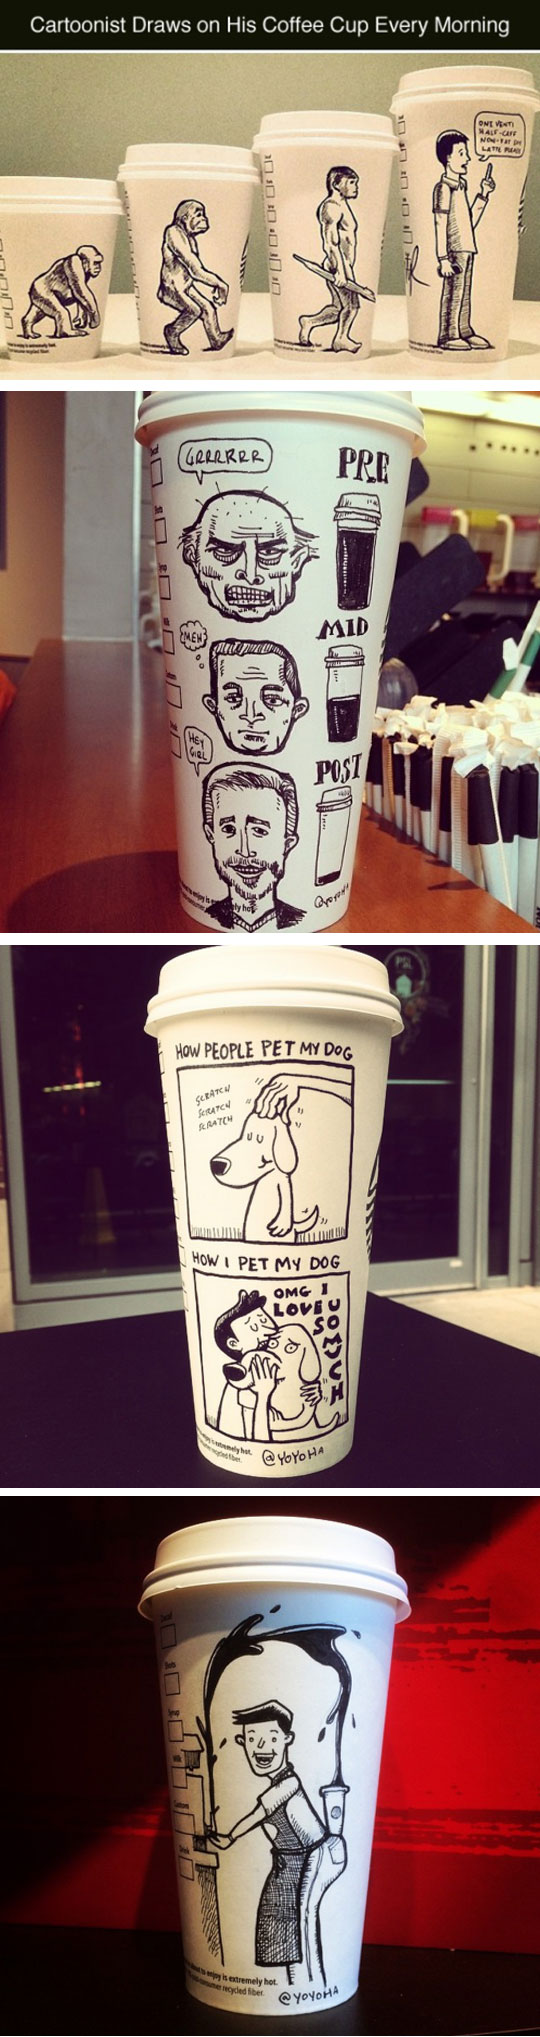 Drawing In A Coffee Cup Every Morning